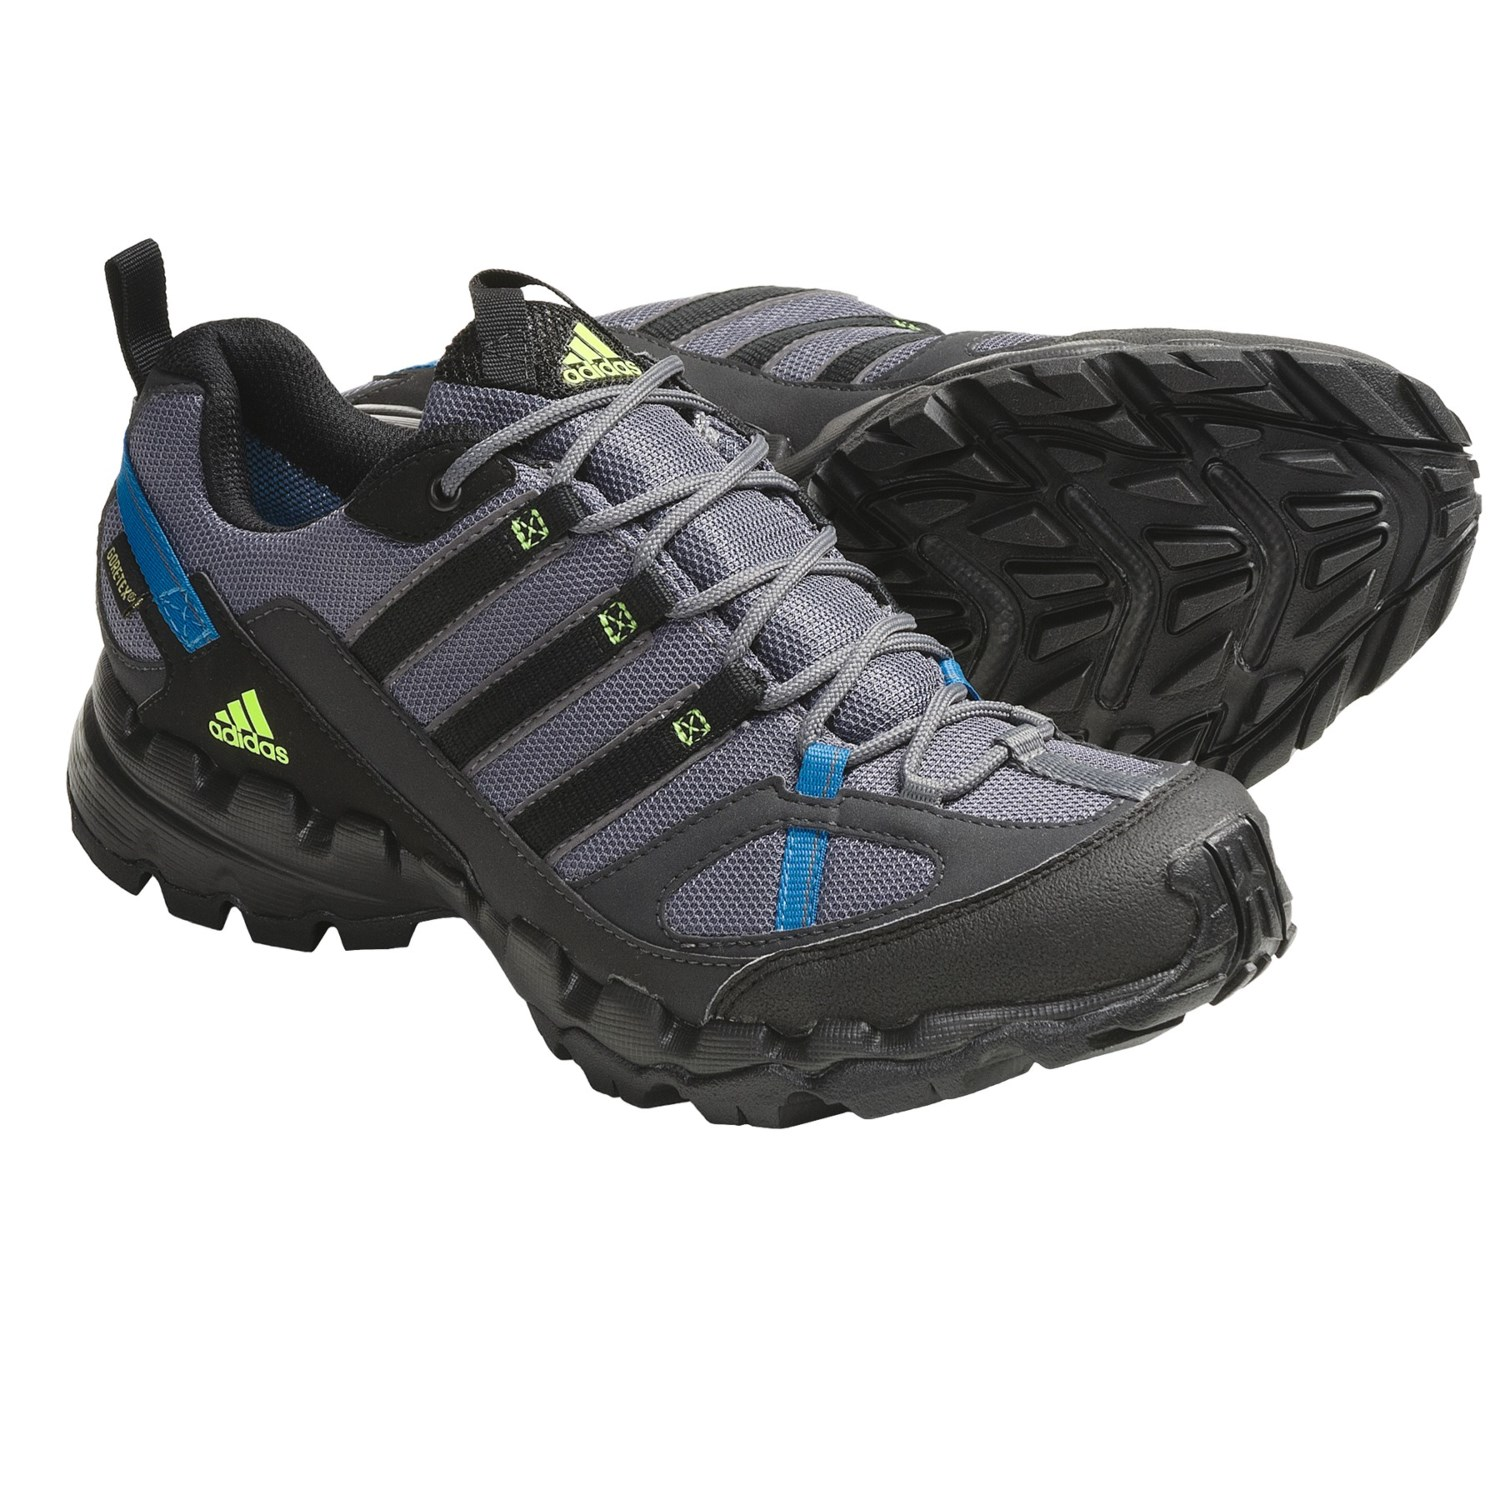 Use Trail Running Shoes For Golf